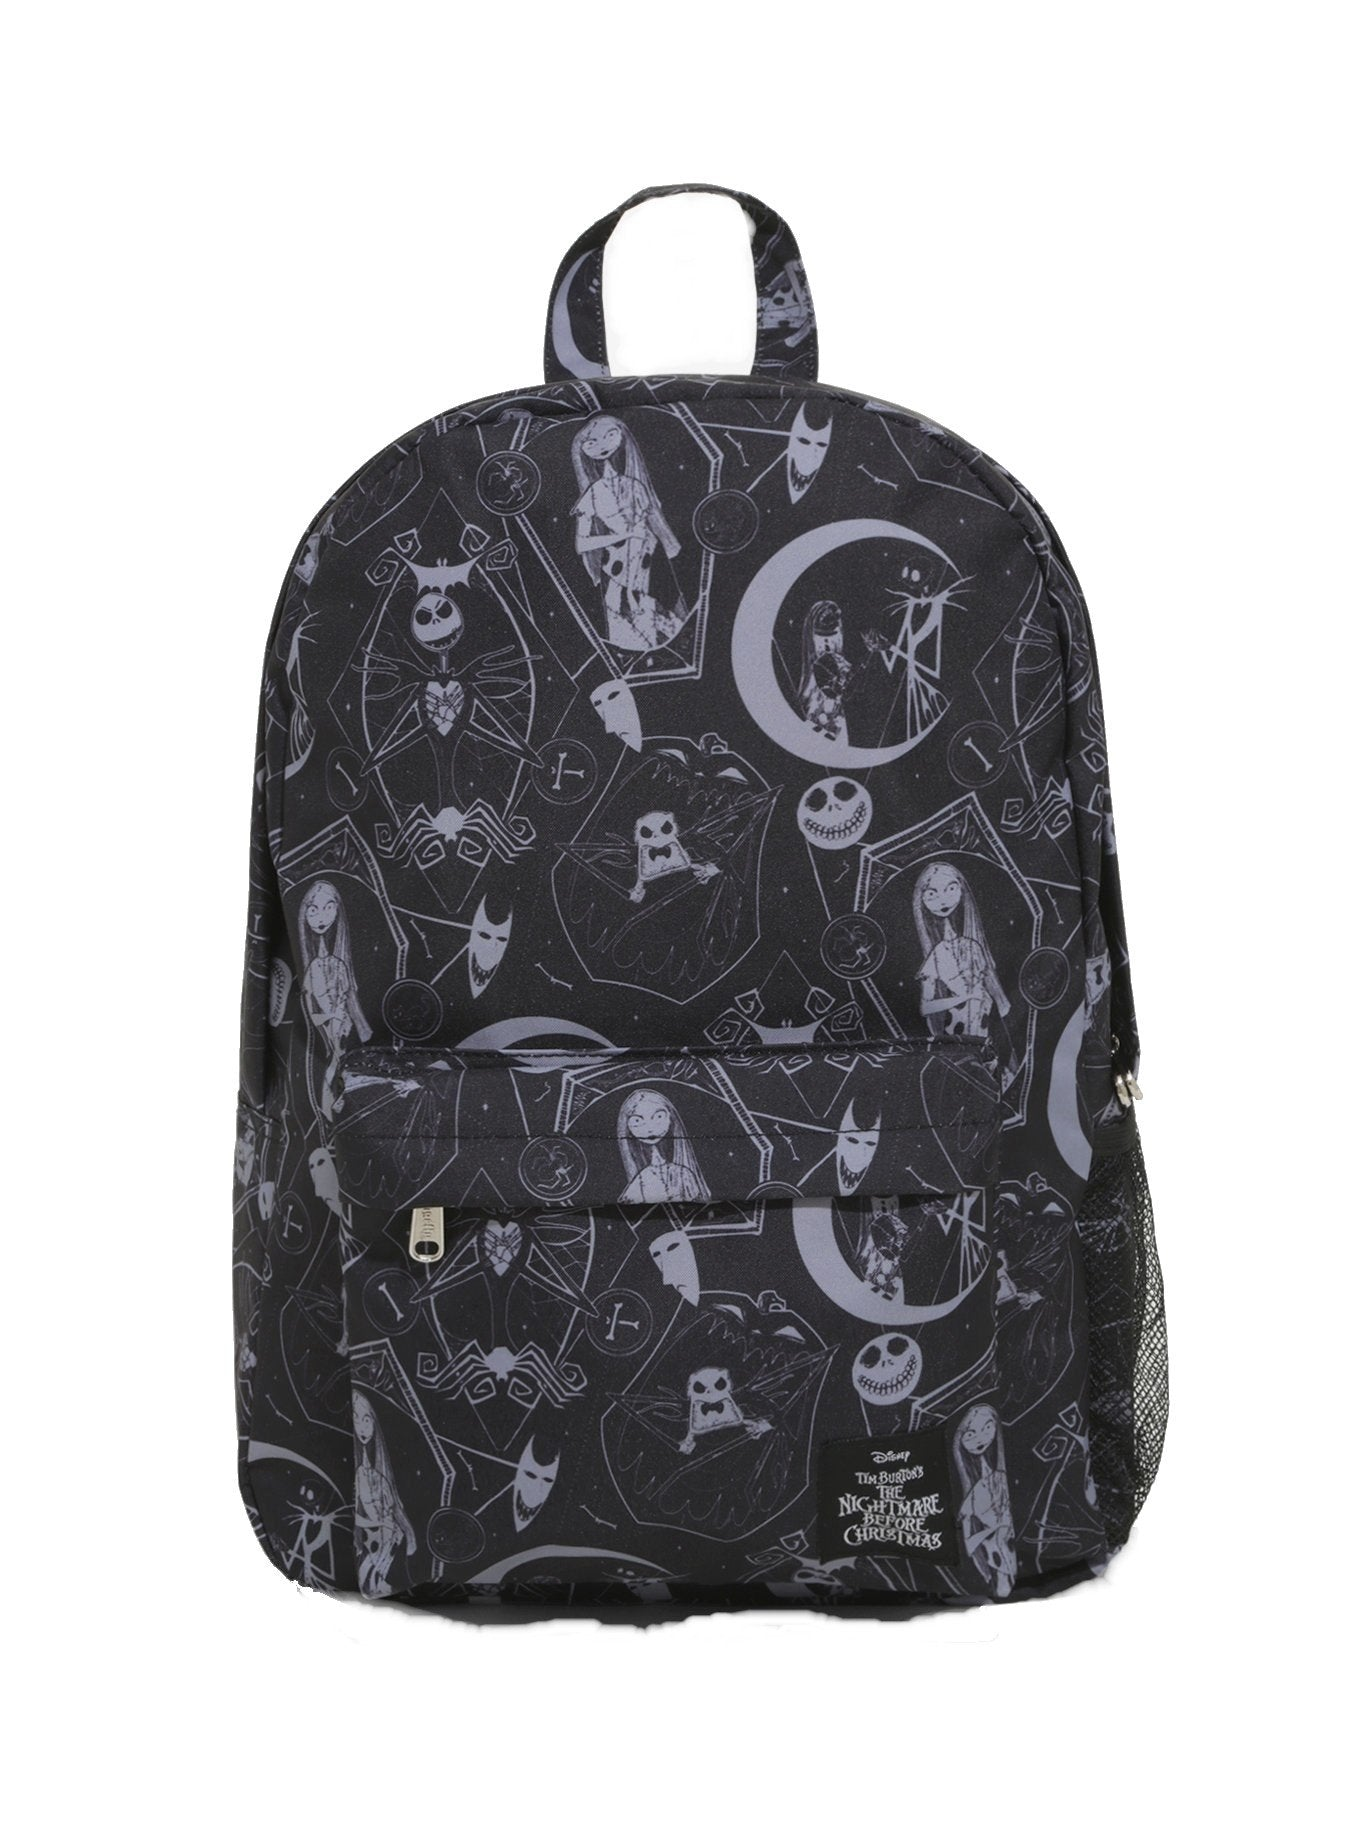 NBC Nightmare Before Christmas Jack Celestial Back-pack Bag School Coffin